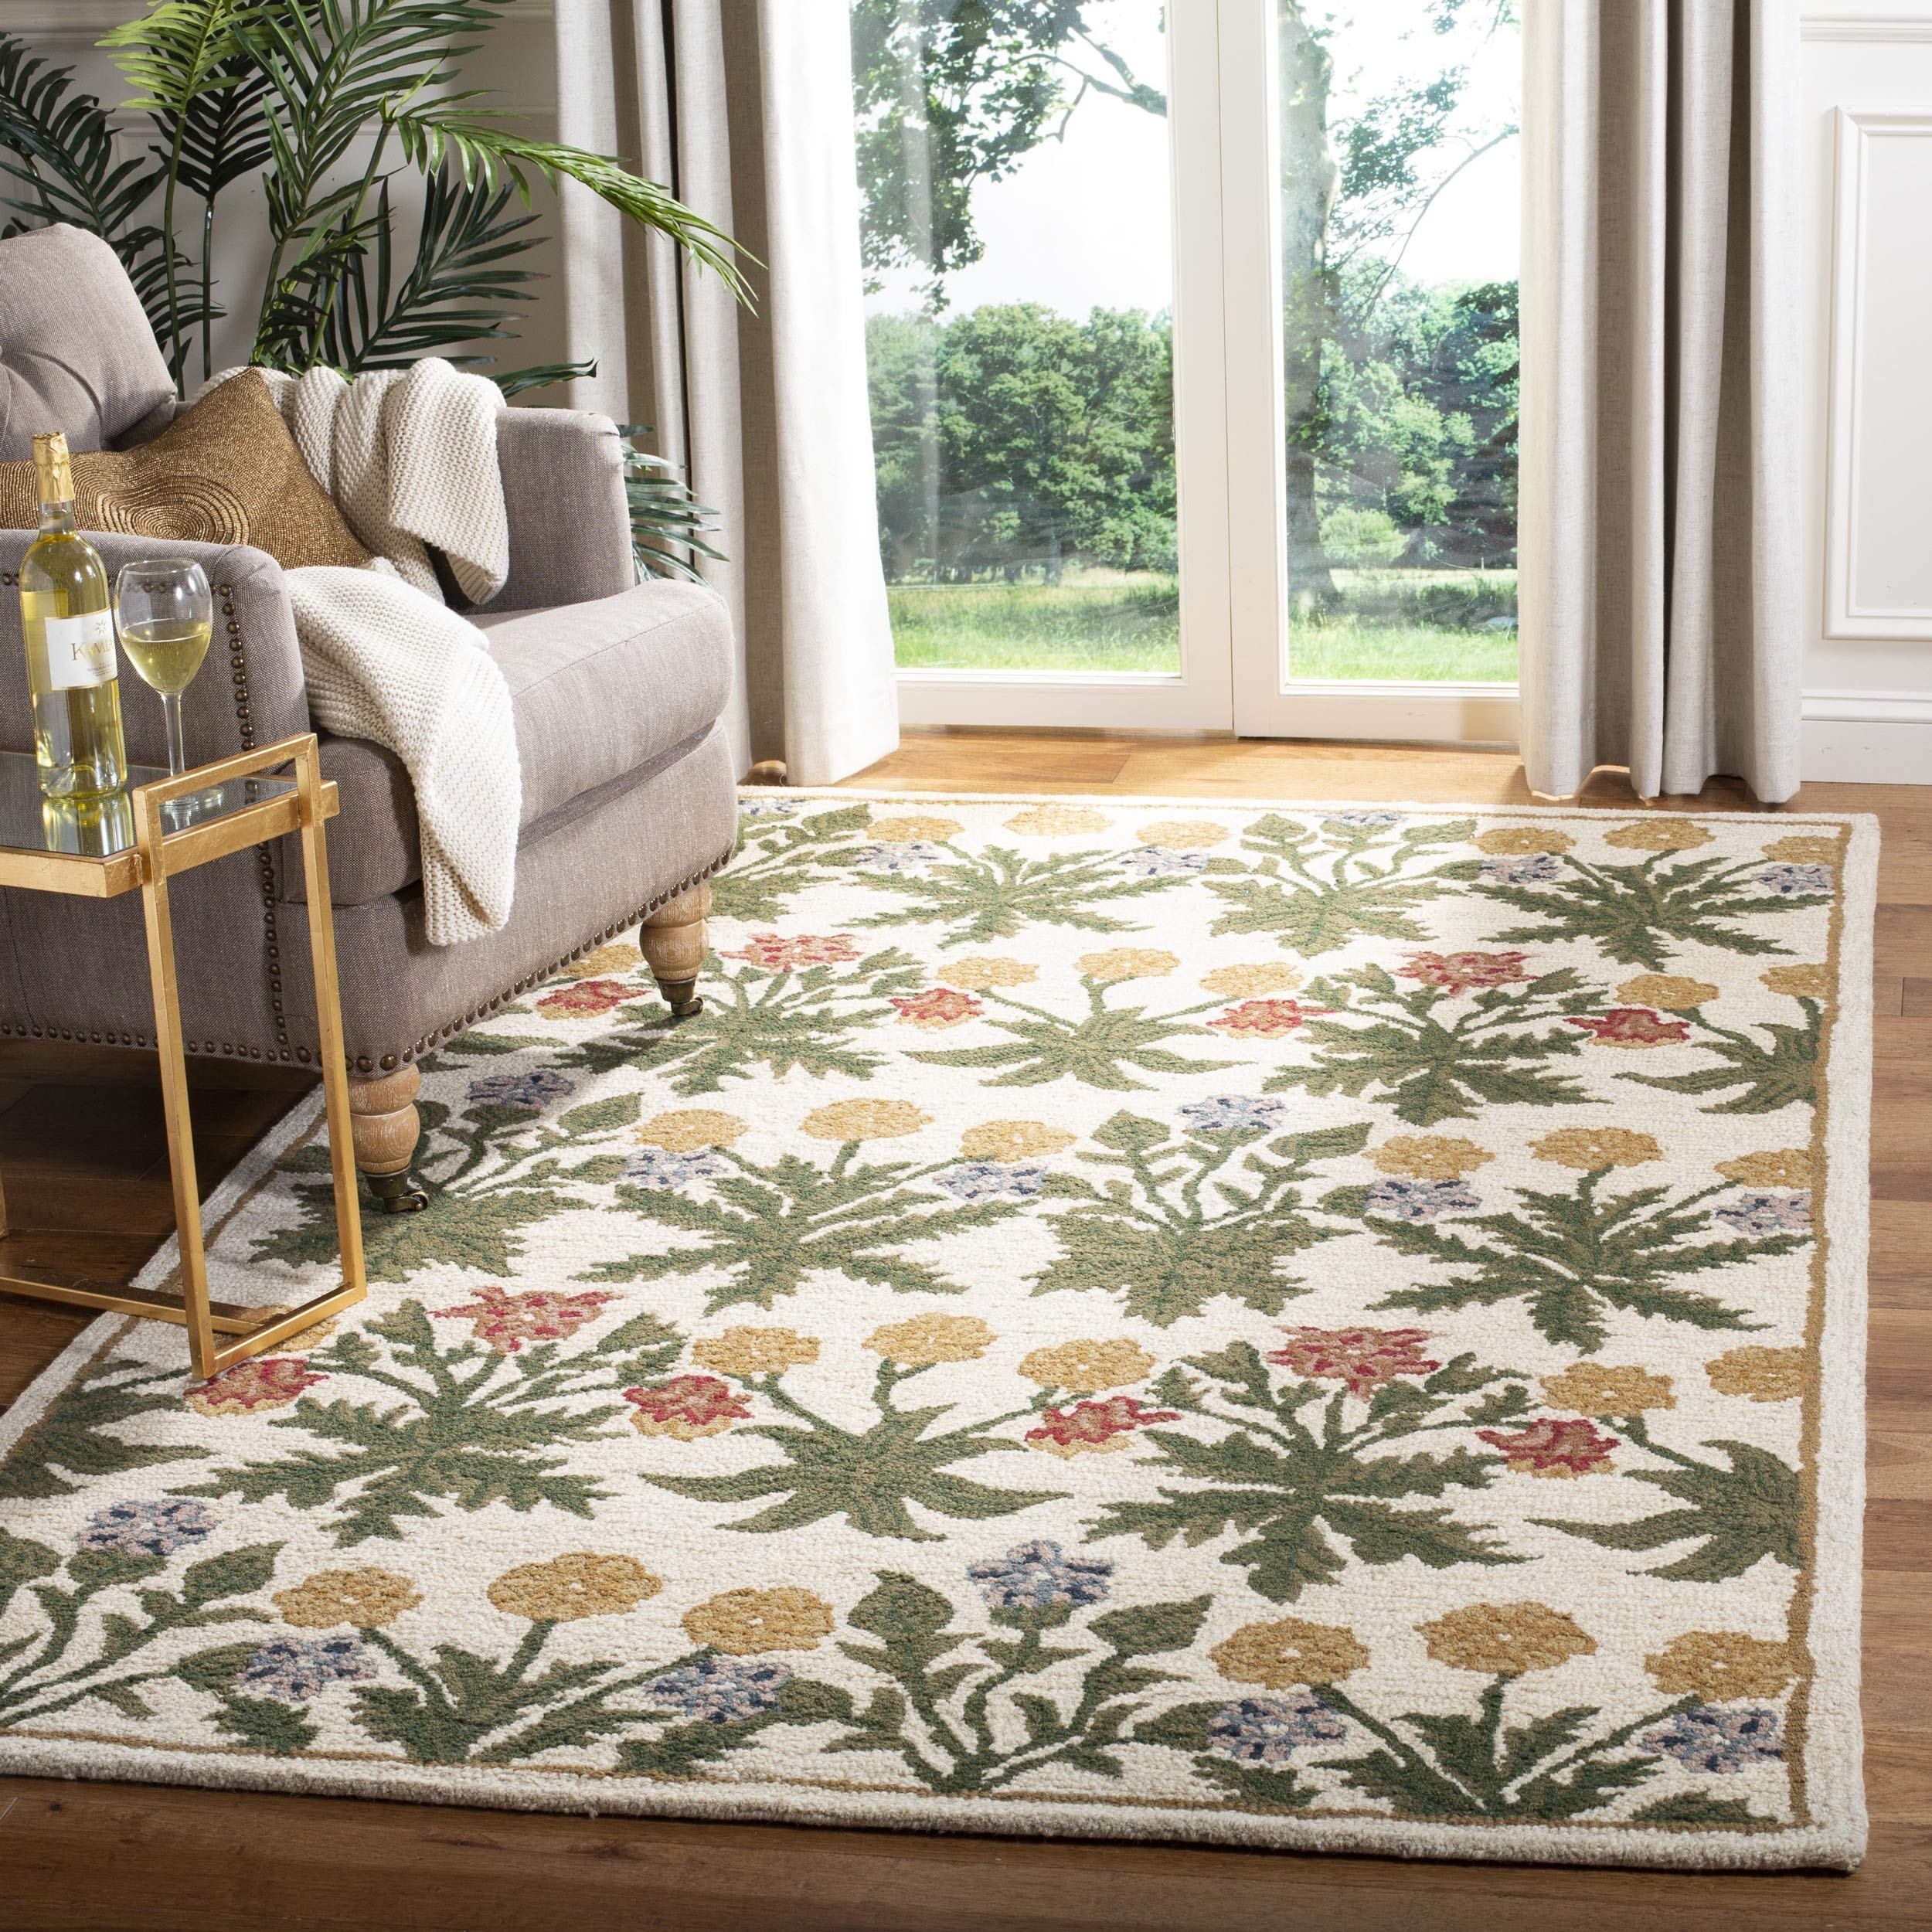 Safavieh Blossom Collection BLM151A Handmade Beige and Multi Premium Wool Area Rug (3' x 5')